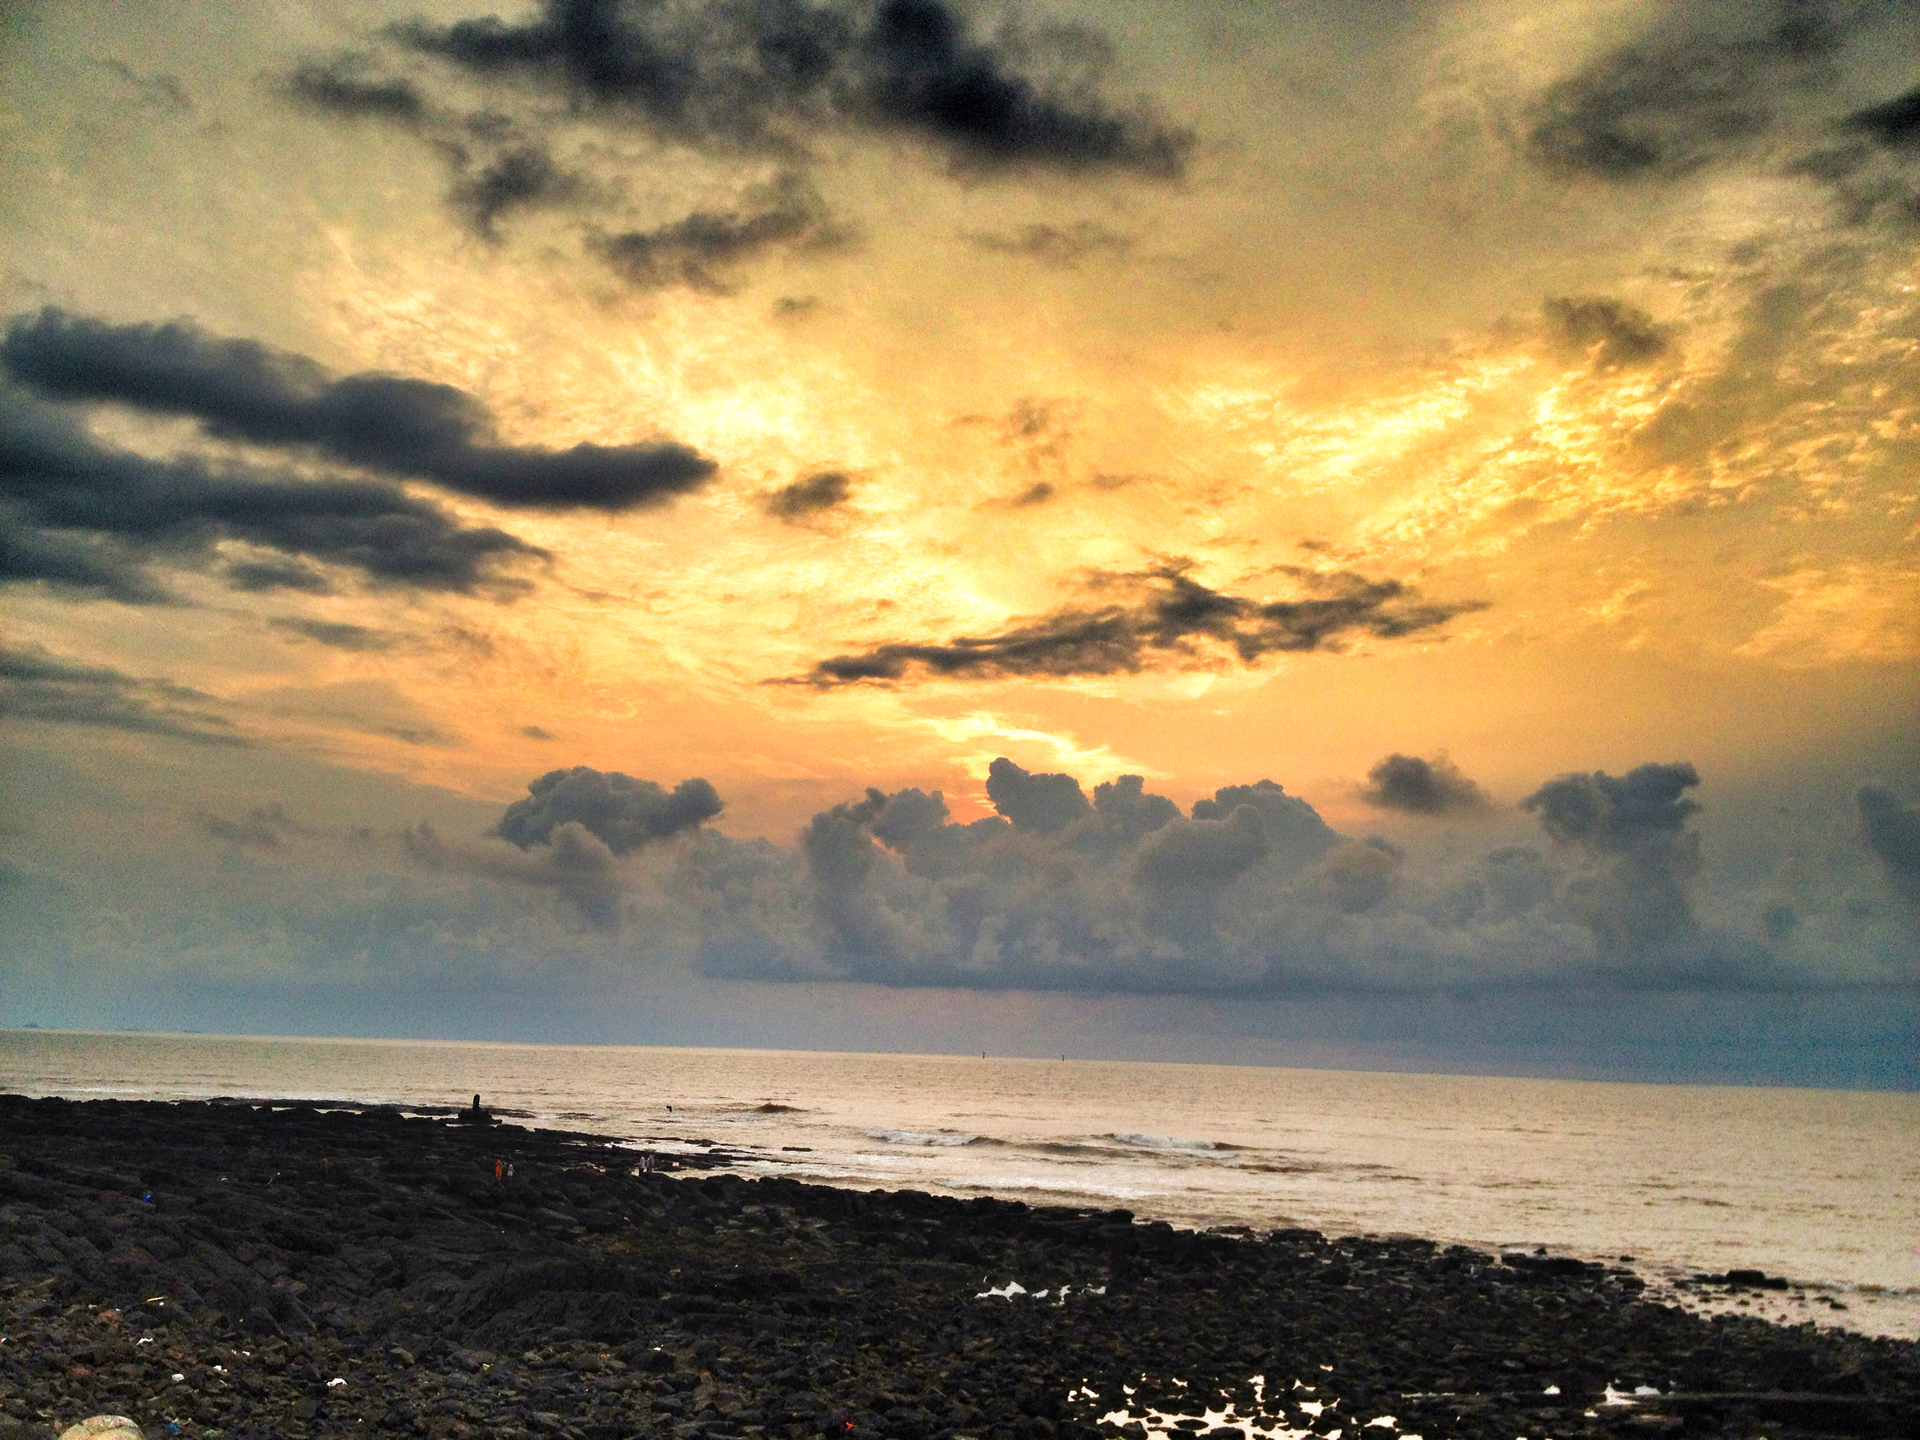 sunset clouds dusk india by neenzin